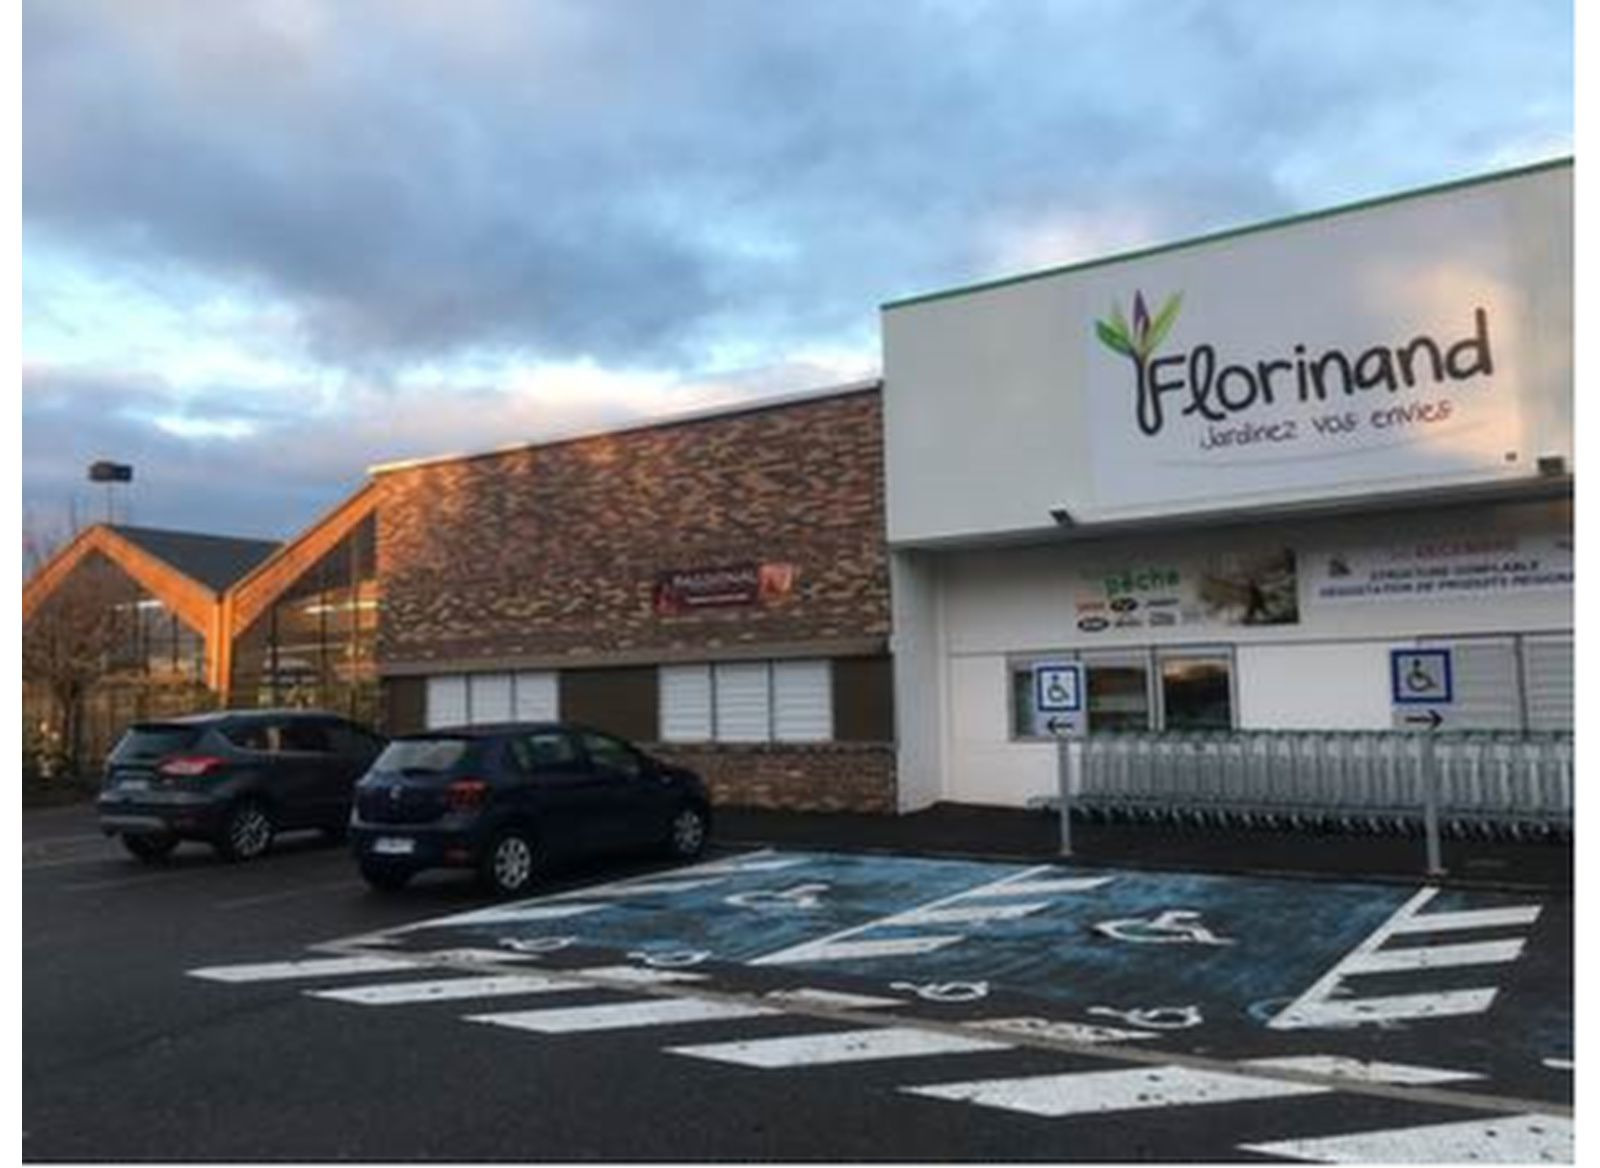 Magasin Ameublement Ussel Florinand Ussel Ussel Corrèze